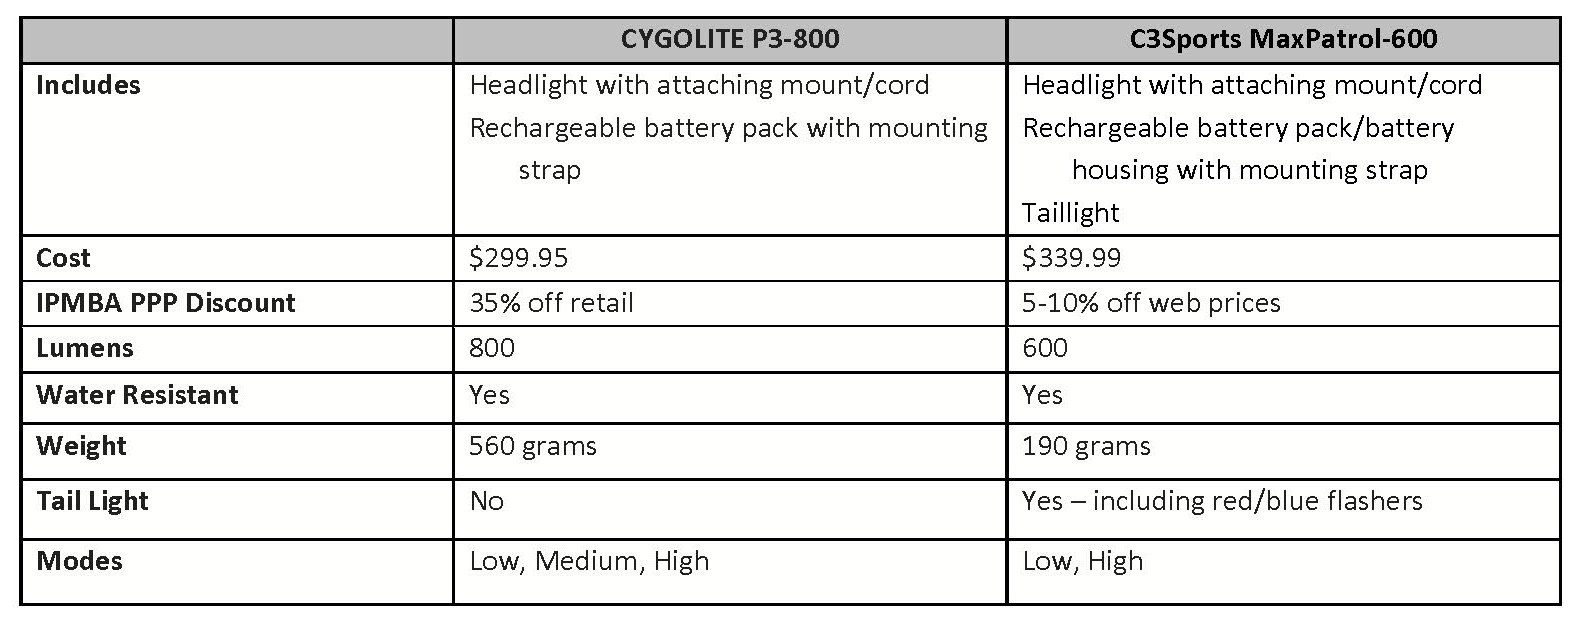 Cygolite P3-800 vs. C3Sports MaxPatrol-600